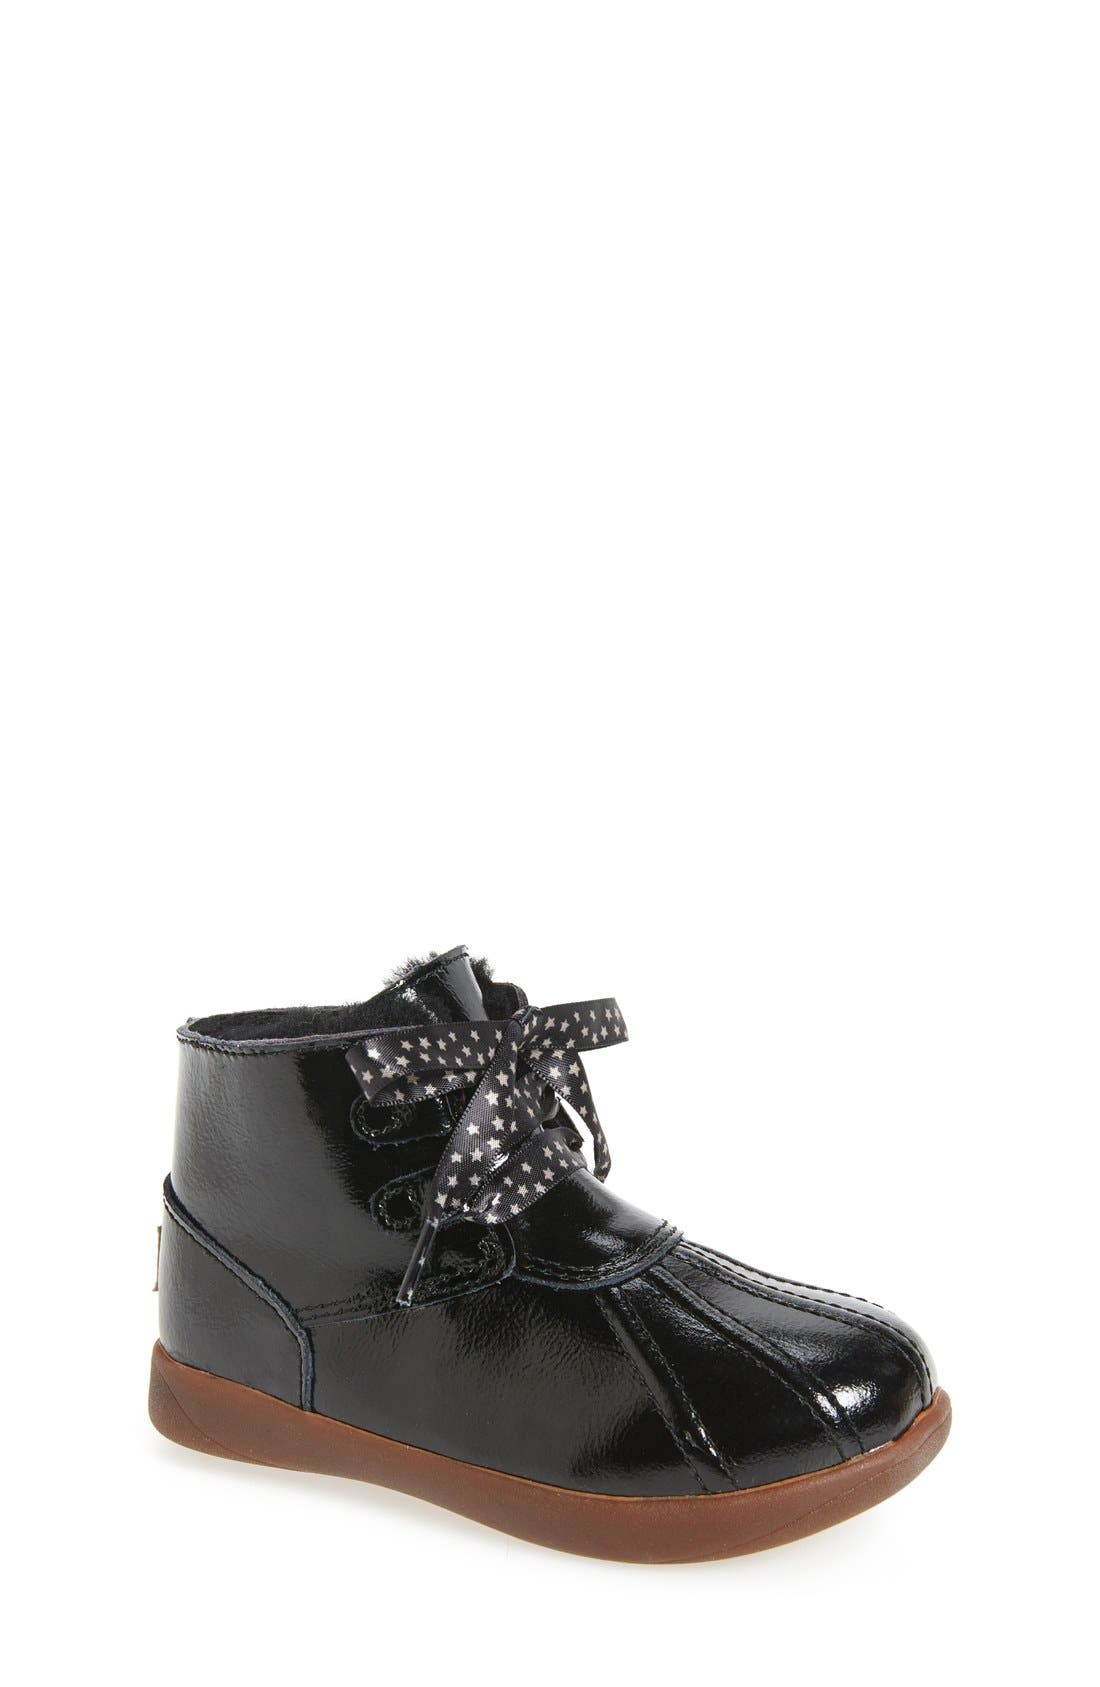 Payten Boot,                             Main thumbnail 1, color,                             Black Patent Leather